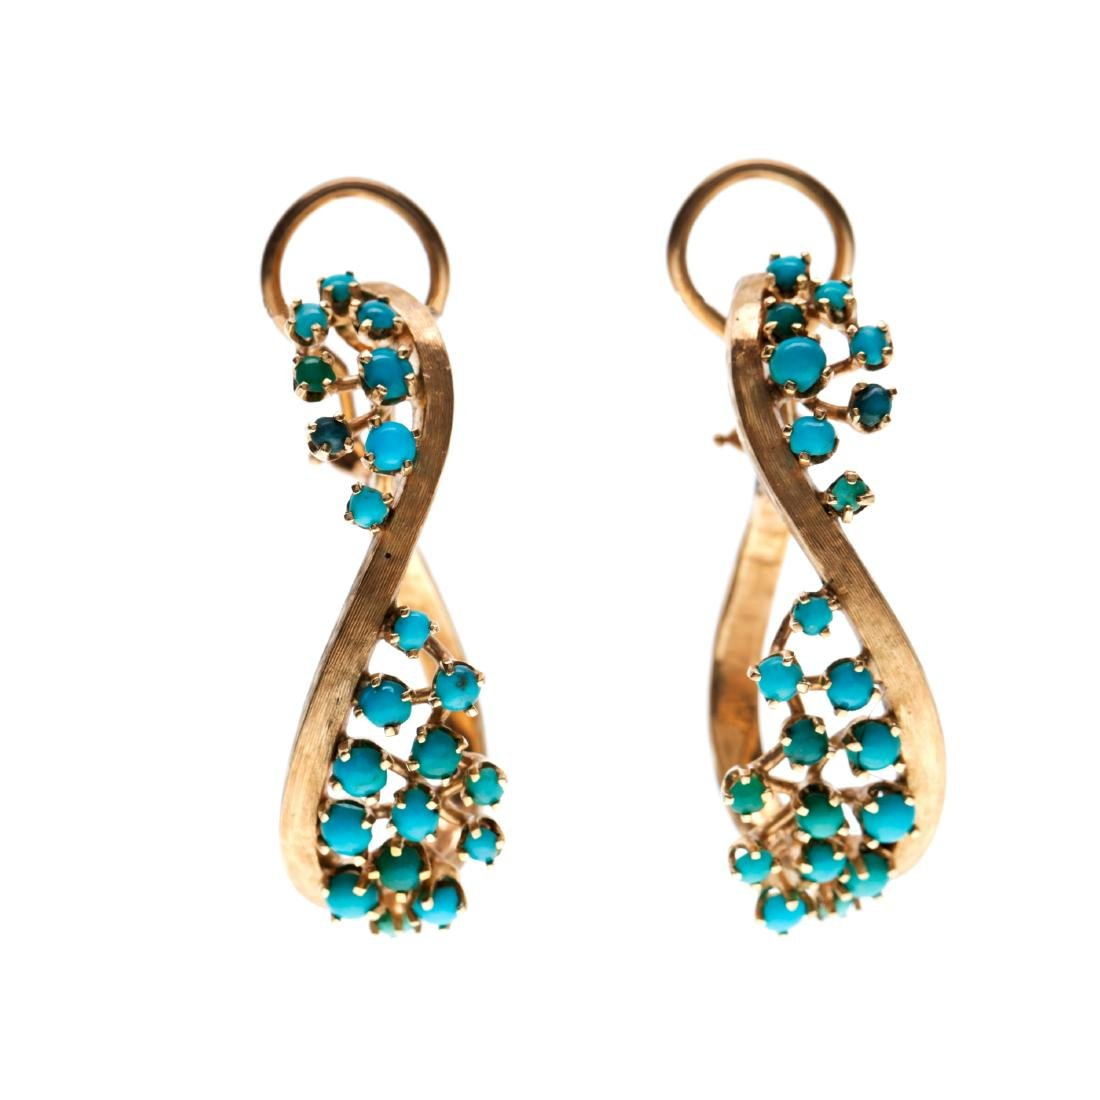 A pair of turquoise, 14k yellow gold earrings